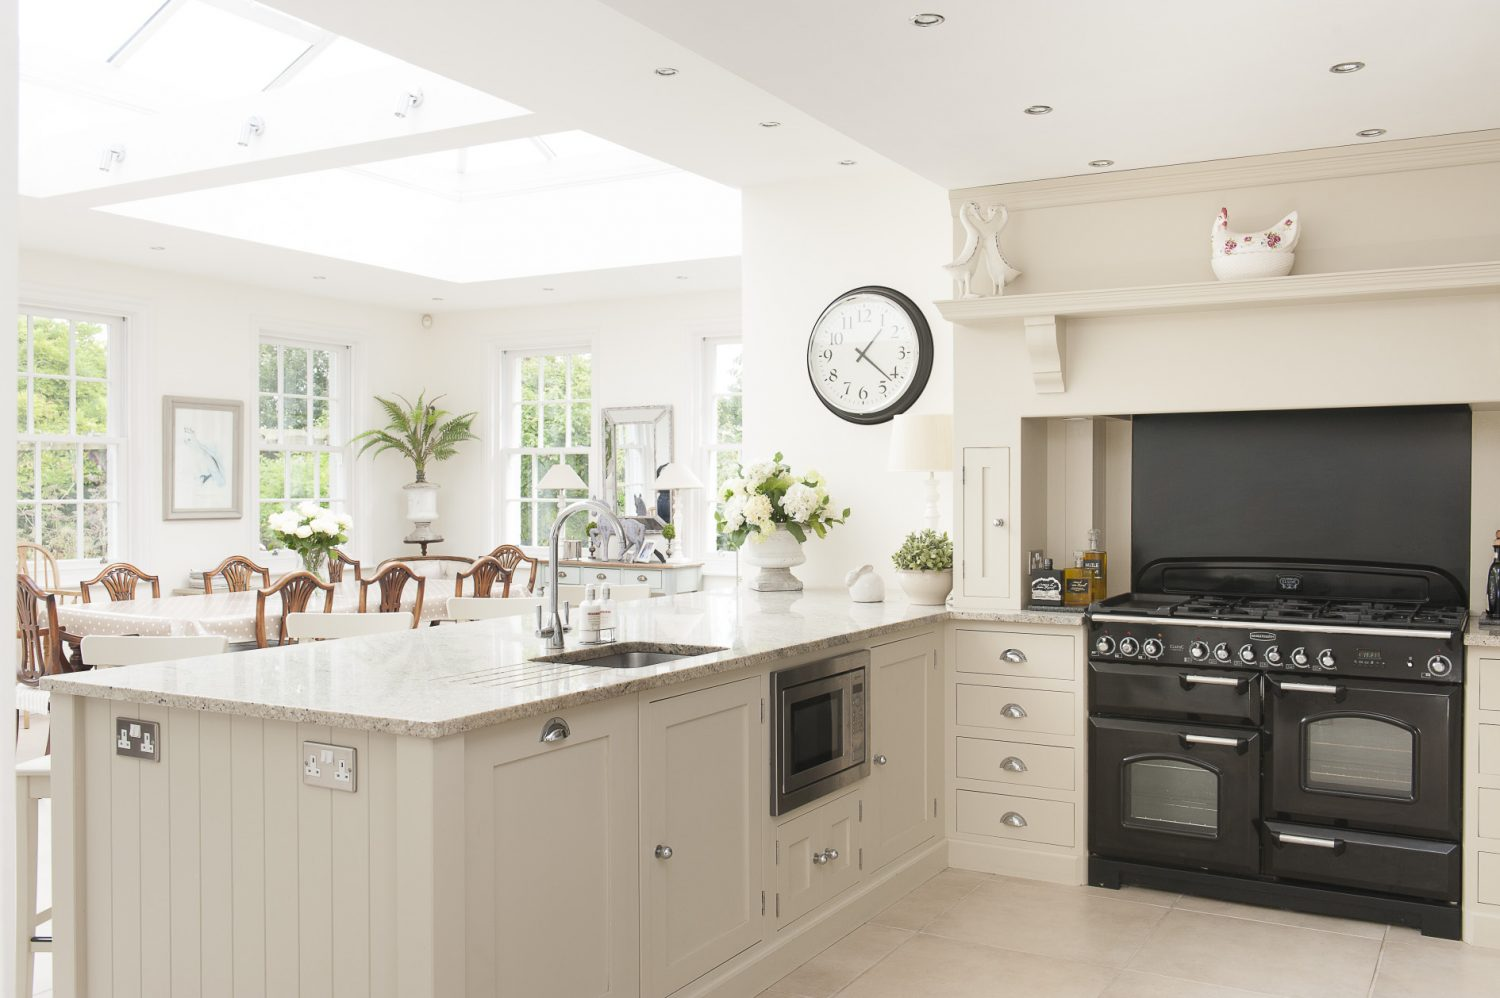 The kitchen has been extended to include a spacious orangery